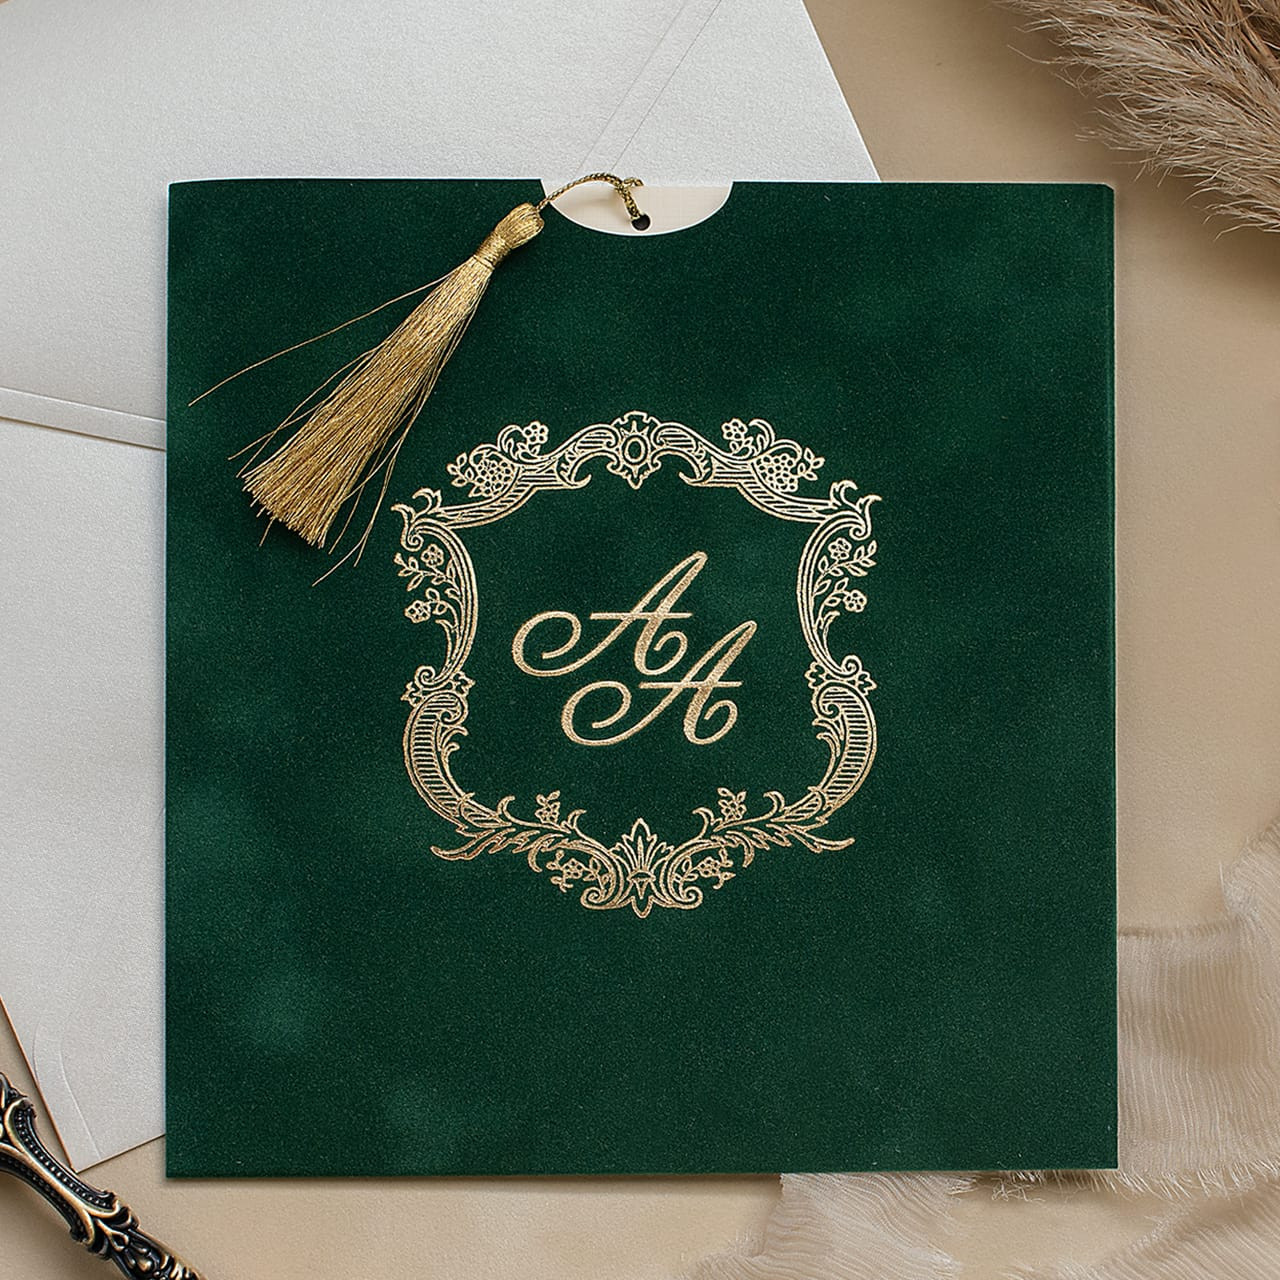 Green Gold Velvet Wedding Invitations Polina Perri Uk